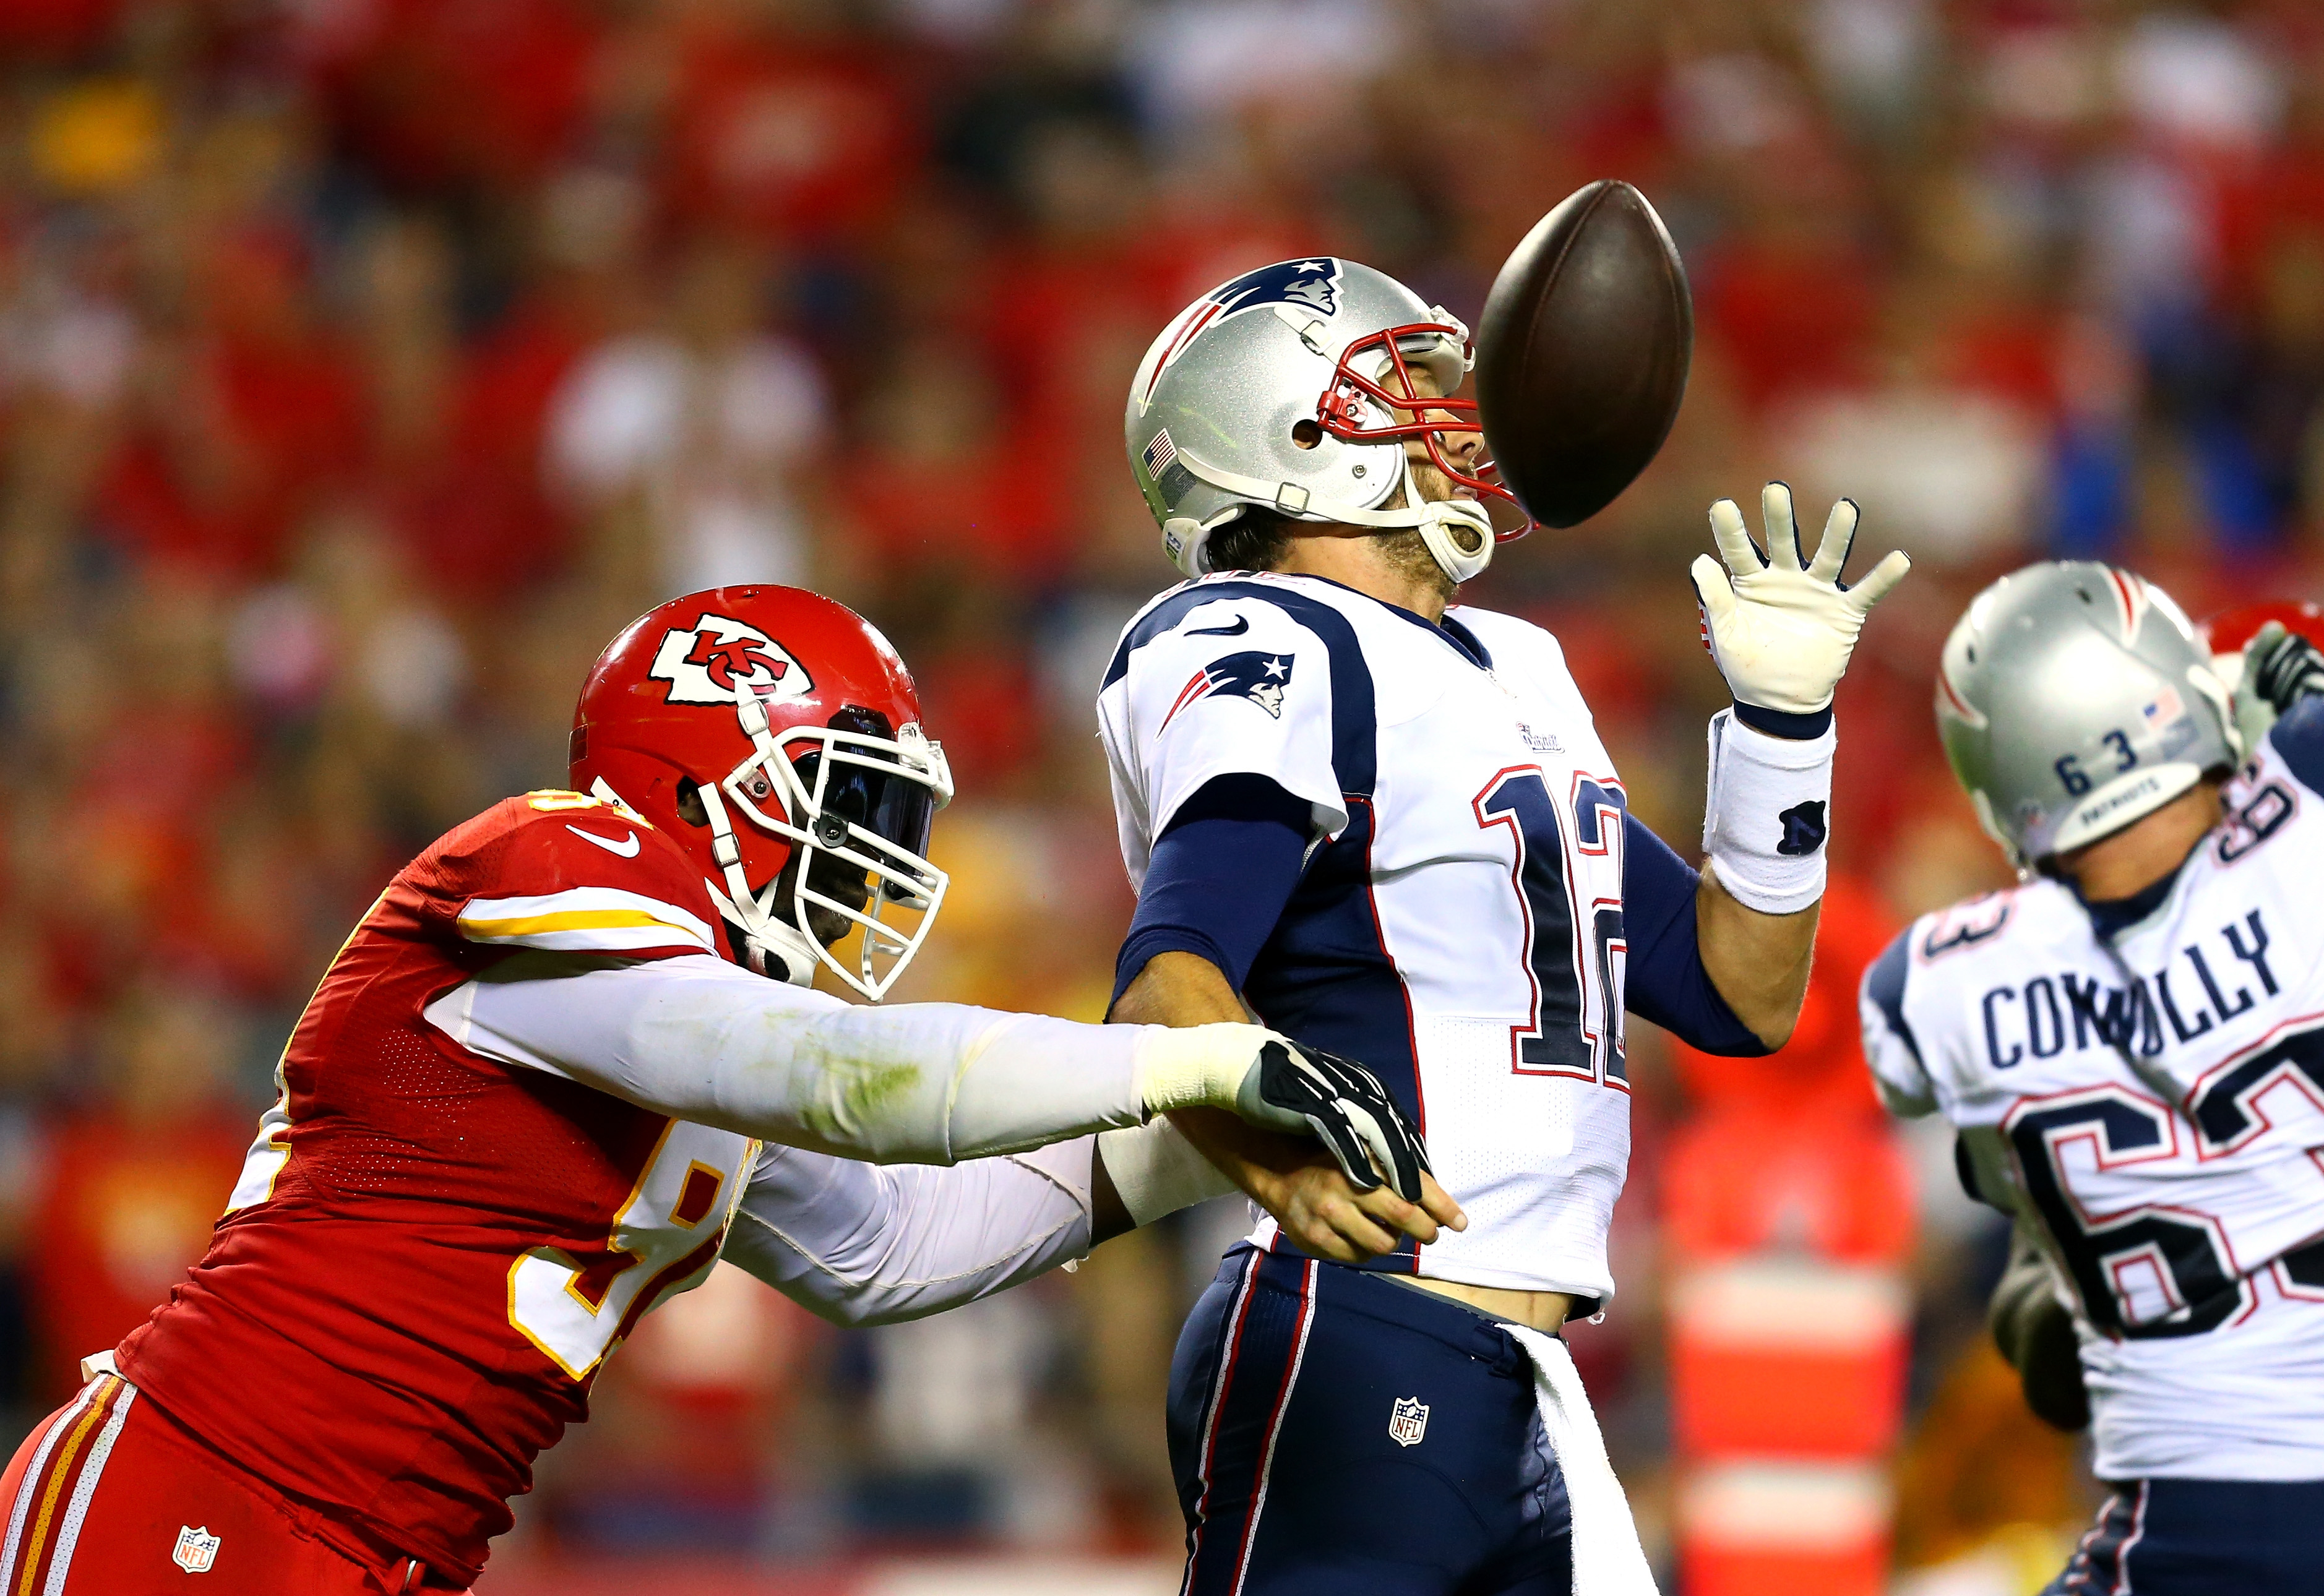 The Patriots' improbably low fumble rate raises more questions